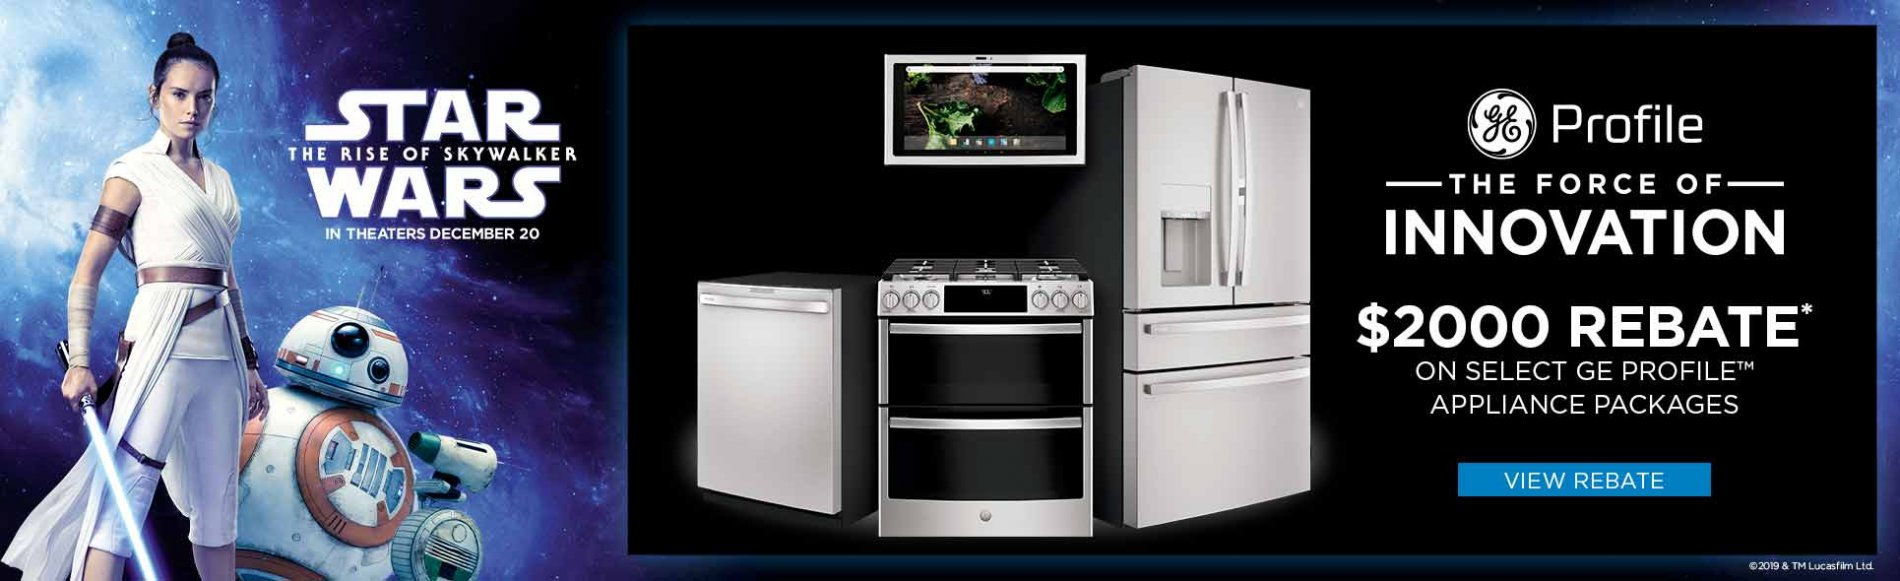 GE Profile the Force of Innovation $2000 Rebate